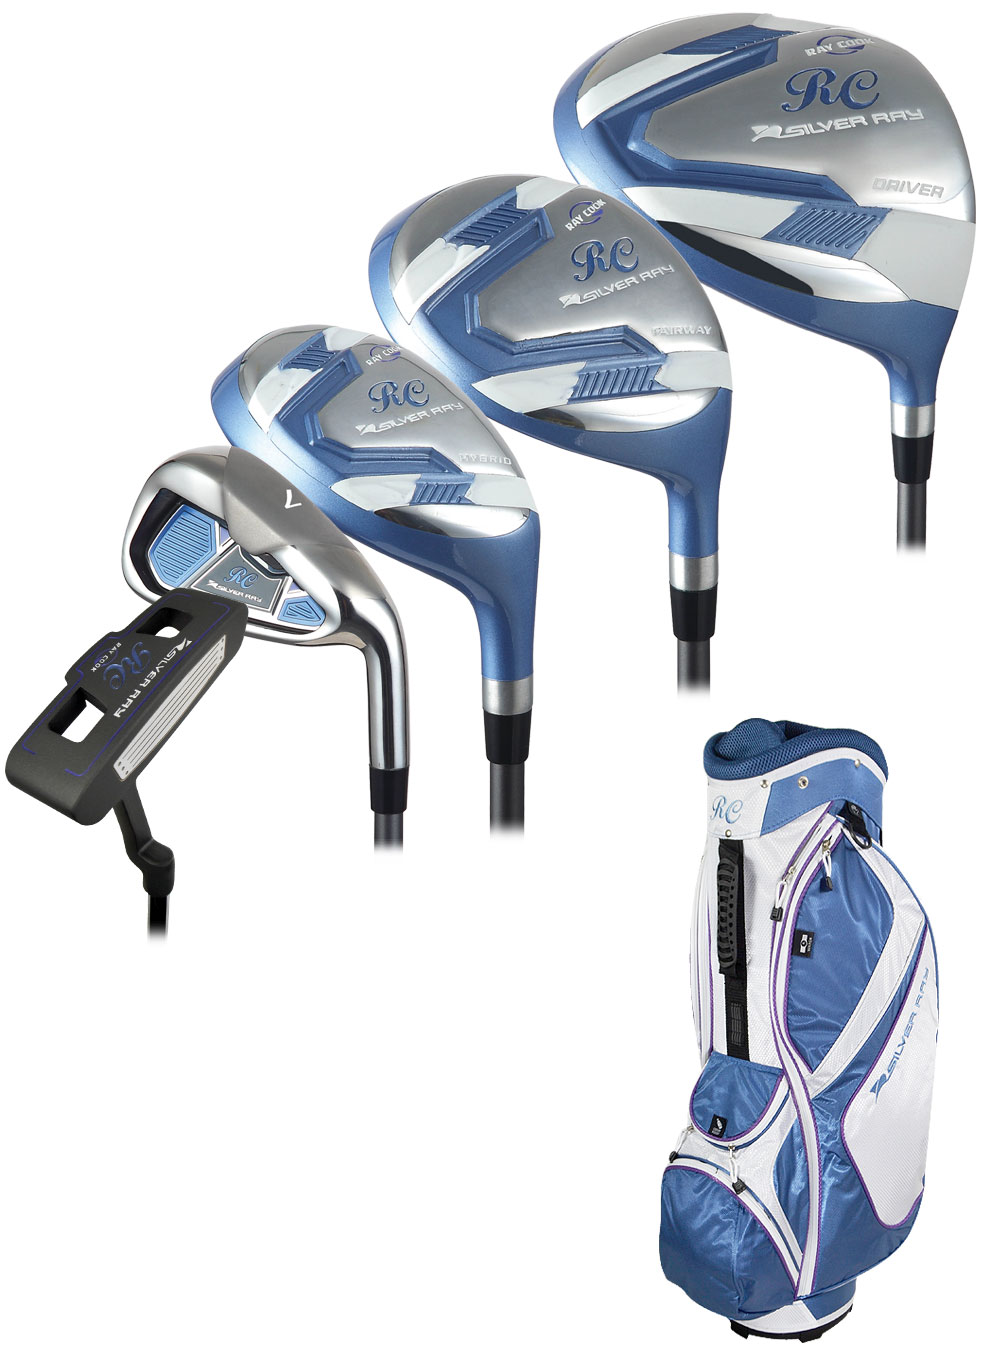 Womens Left Handed Golf Clubs >> Ladies Ray Cook Golf Silver Ray Complete Set W Bag